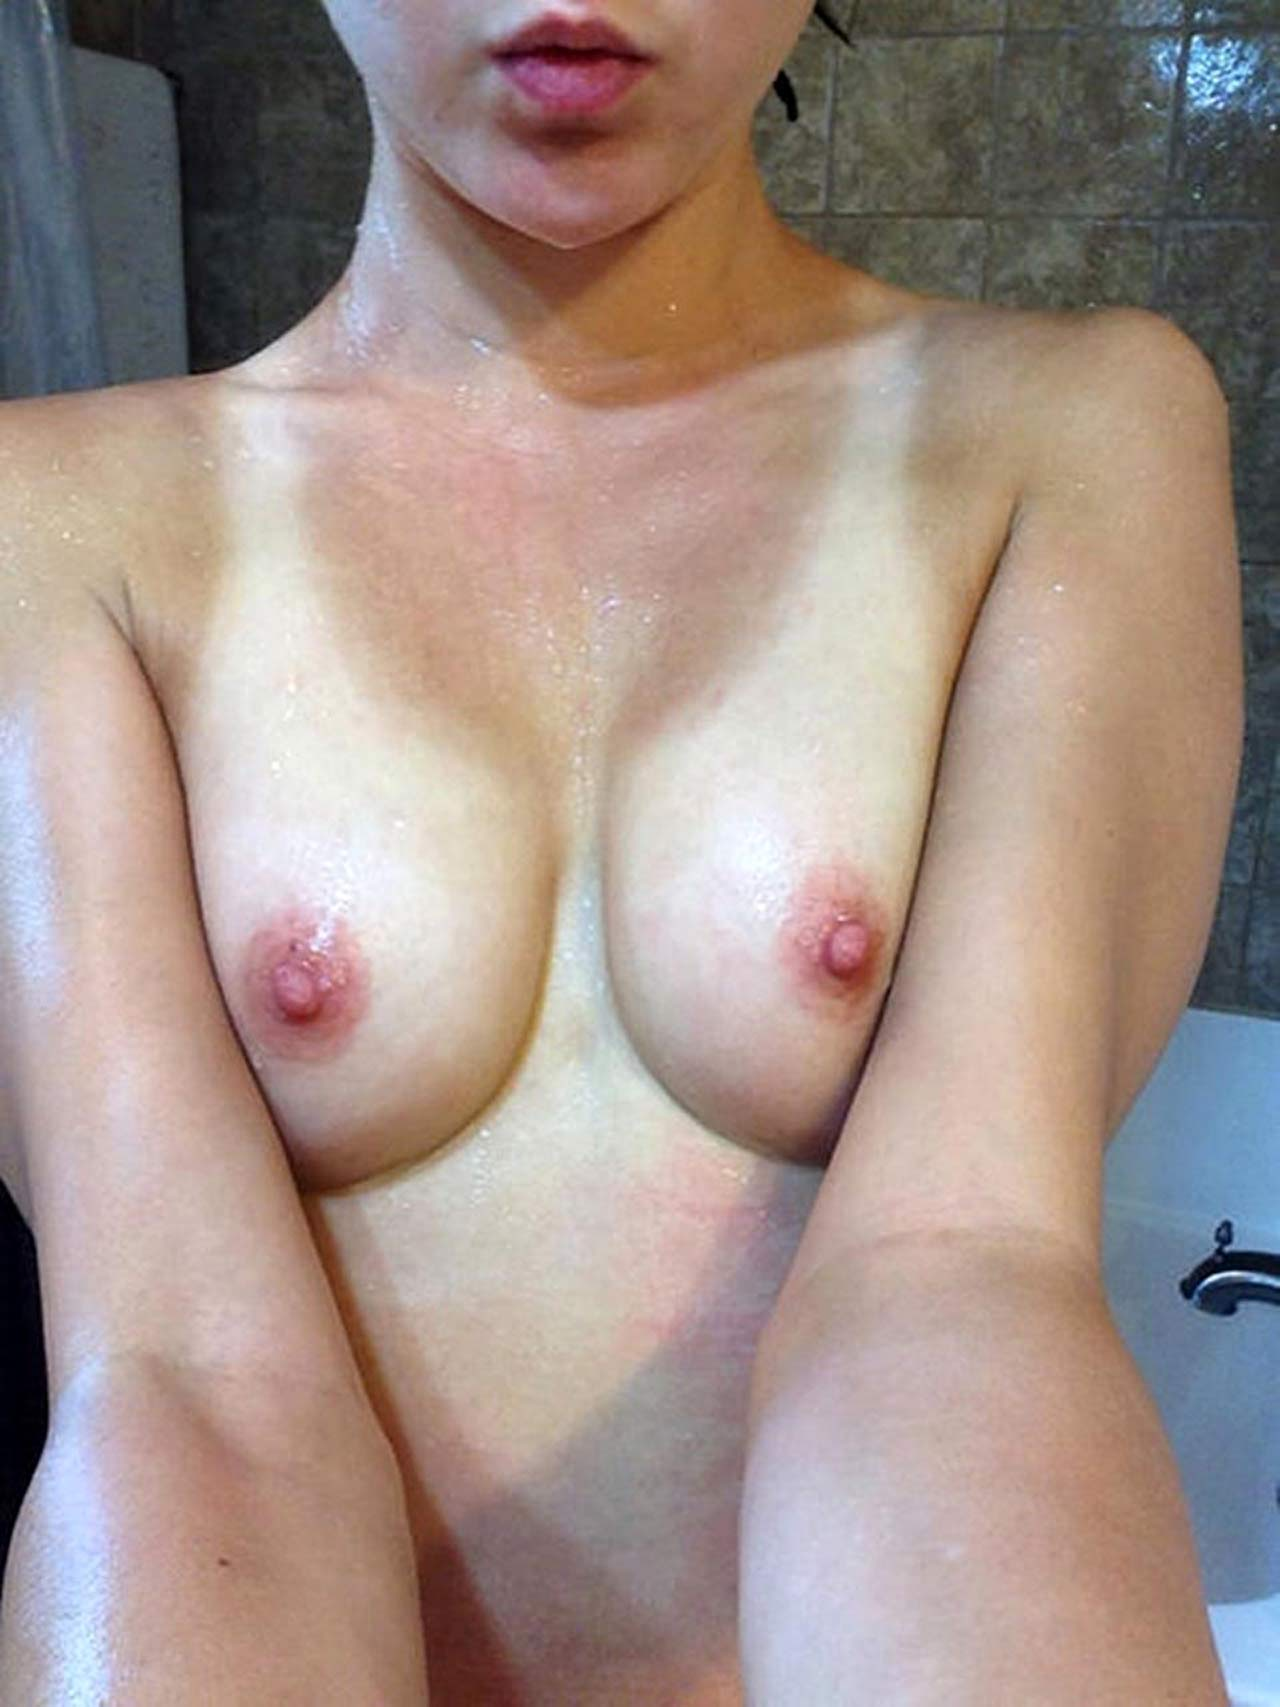 Agree, Maisie williams nude porn